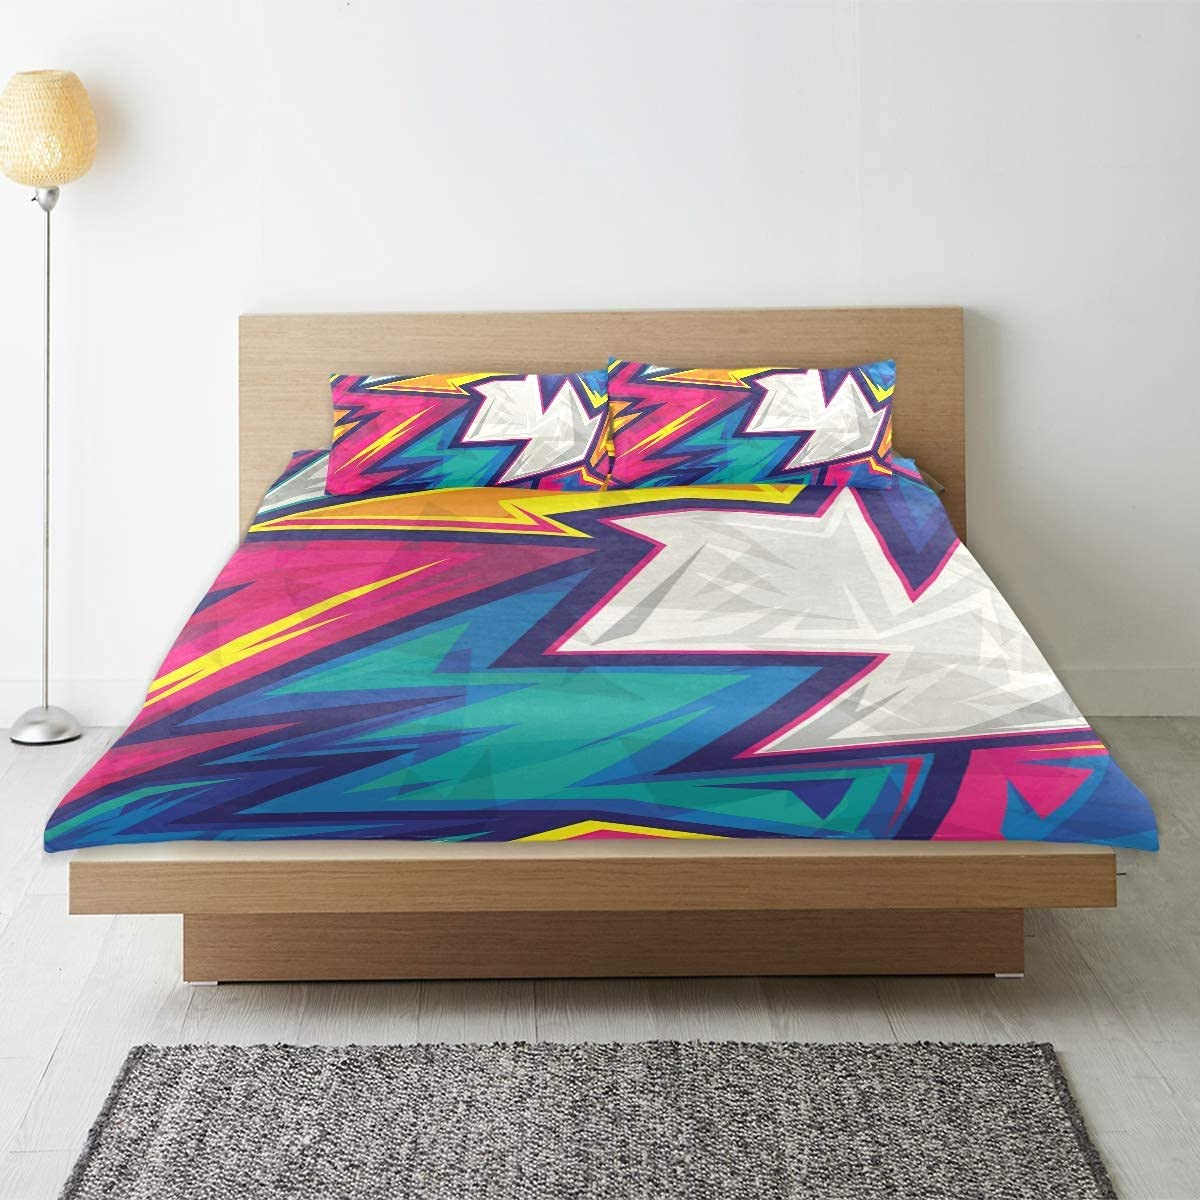 MISCERY Duvet Cover Sheet Set Geometric Gifts Colorful Soldering Abstract Patter